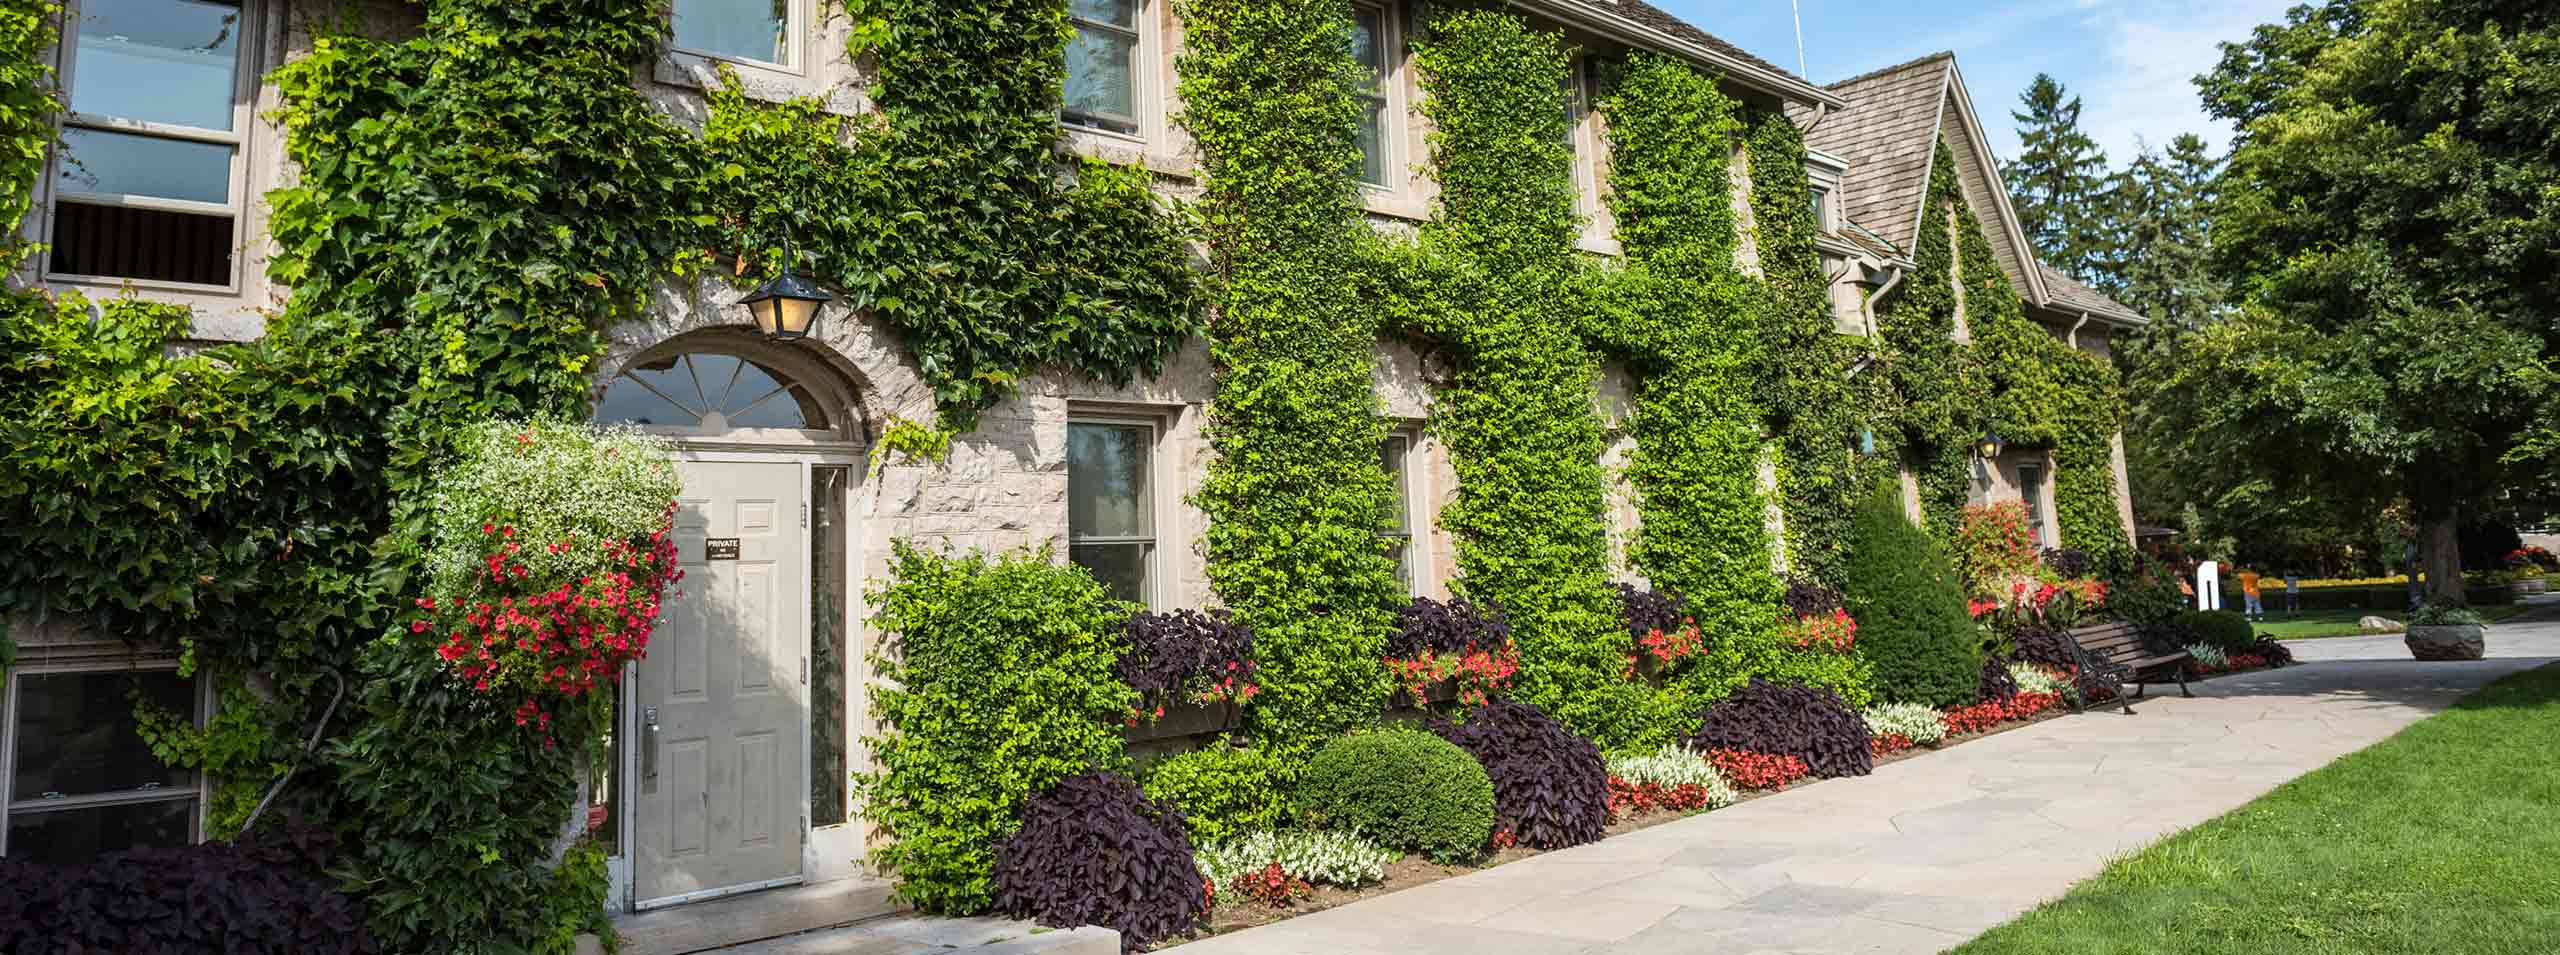 Niagara Parks School of Horticulture to Offer New Opportunities for Student Enrollment